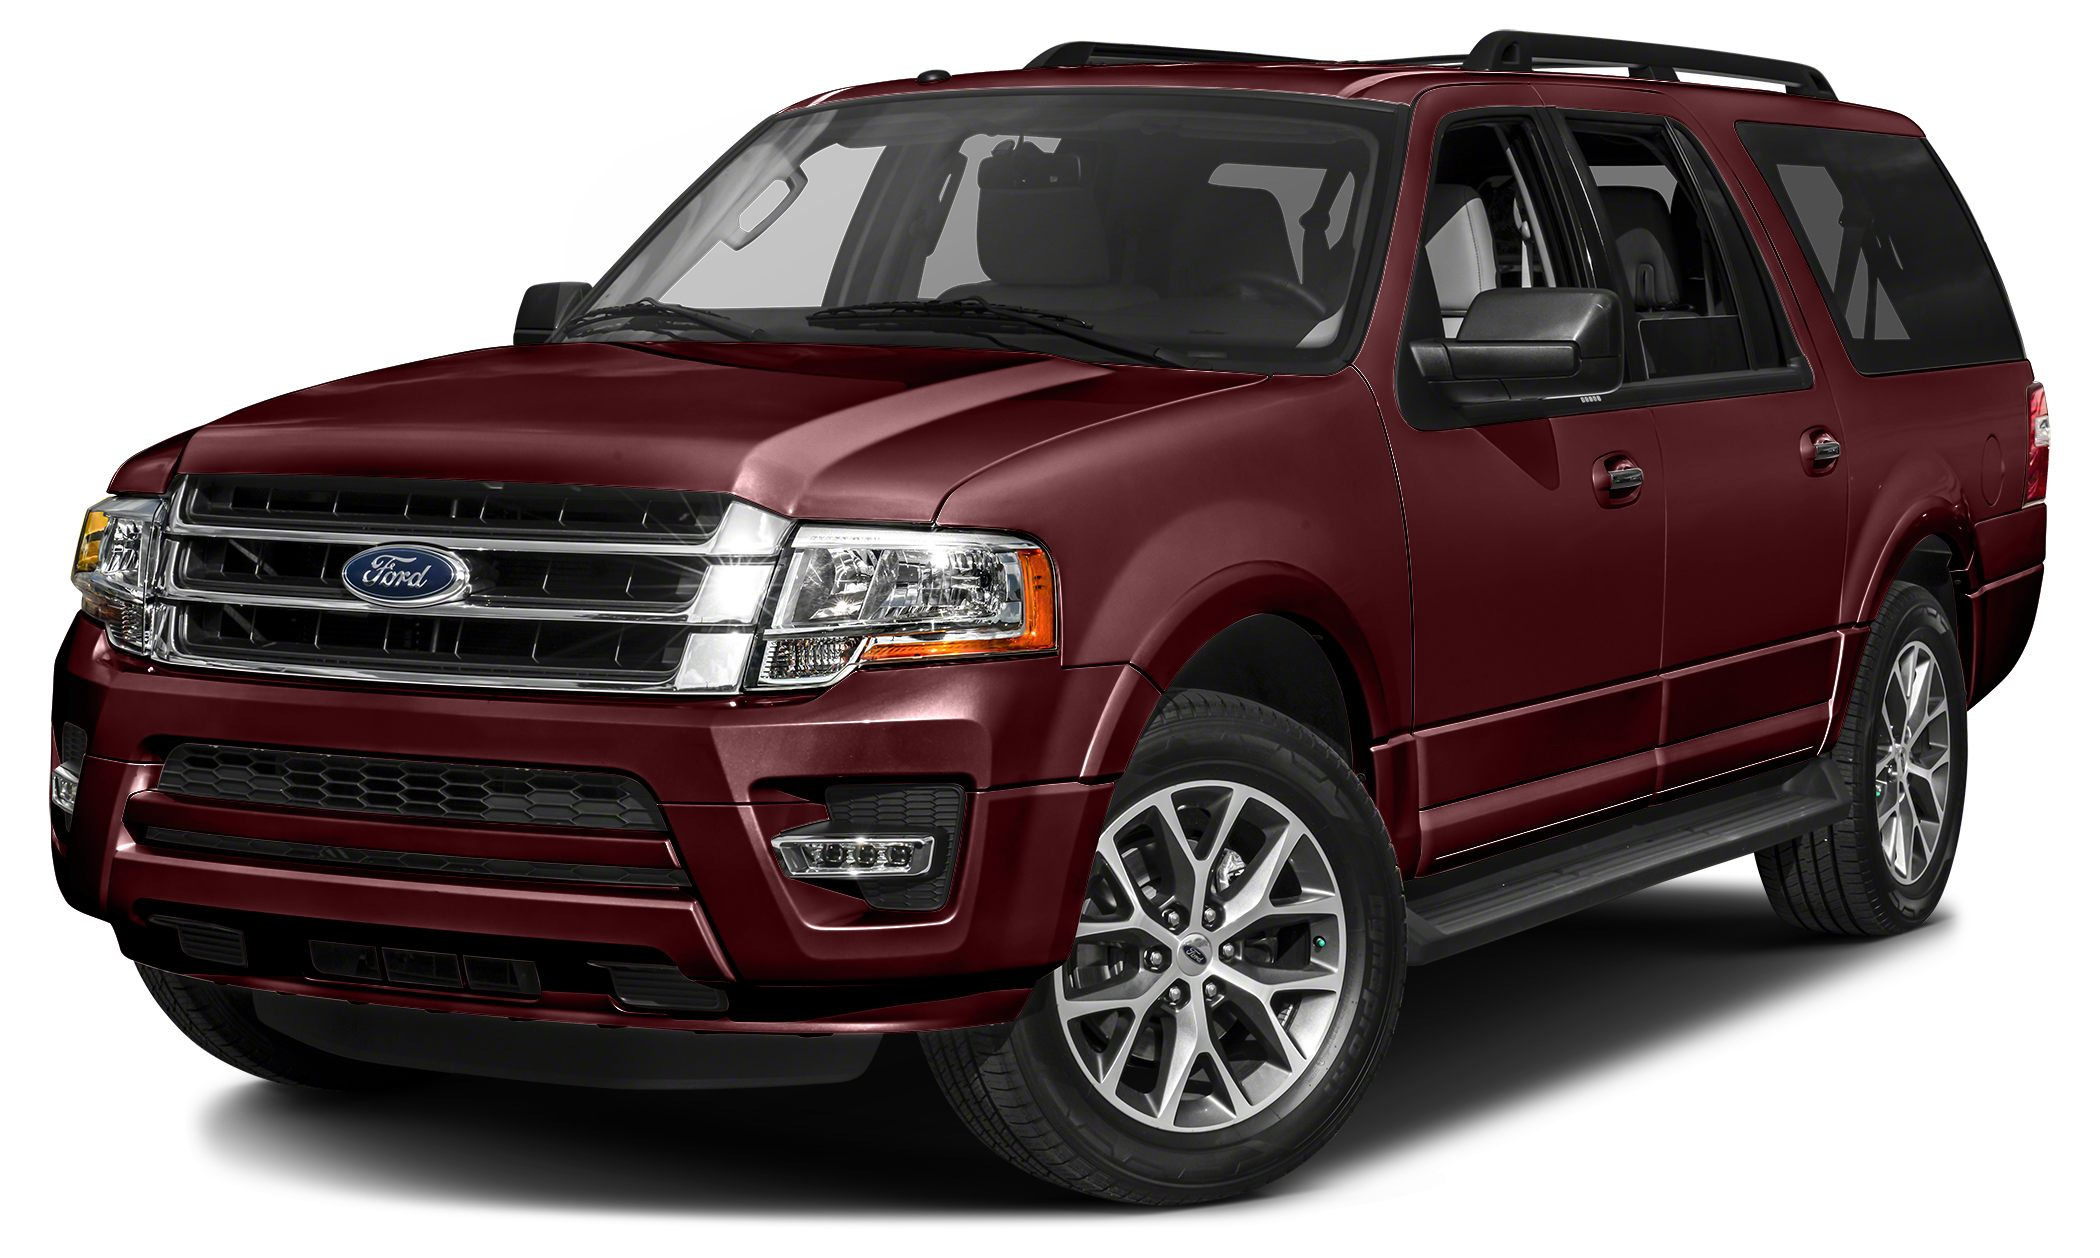 2016 Ford Expedition EL King Ranch This smooth-riding 2016 Ford Expedition EL King Ranch provides